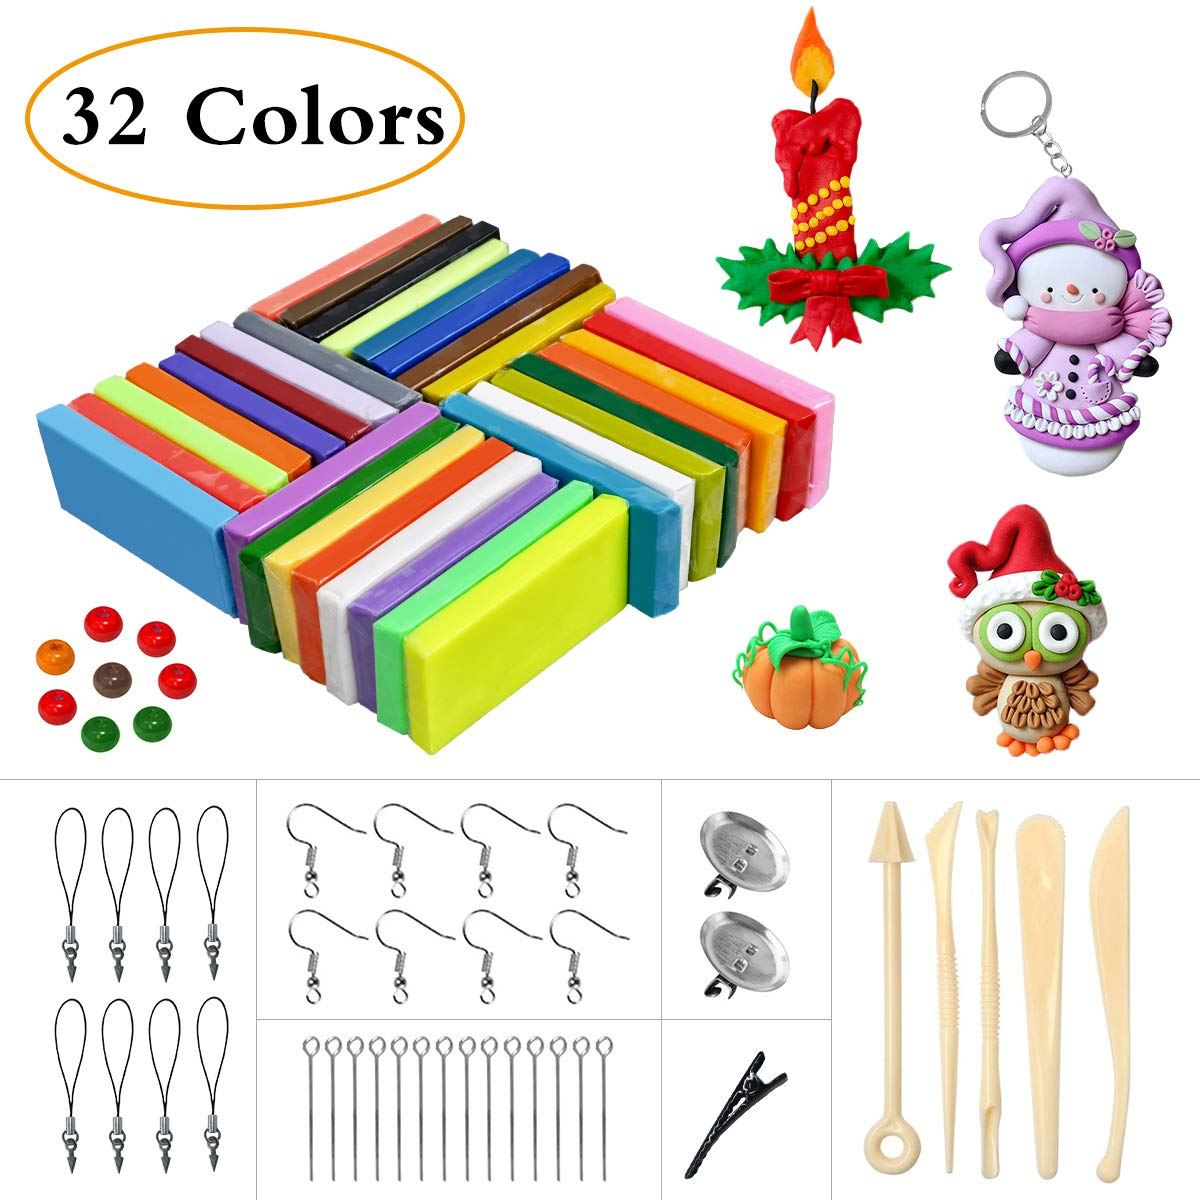 LOYOU Polymer Clay, 26 Colours Oven Bake Clay with Bright Color Soft DIY Clay Set with 5 Tools and 40 Accessories, Moulding Clay Toy Best Gift for Kids